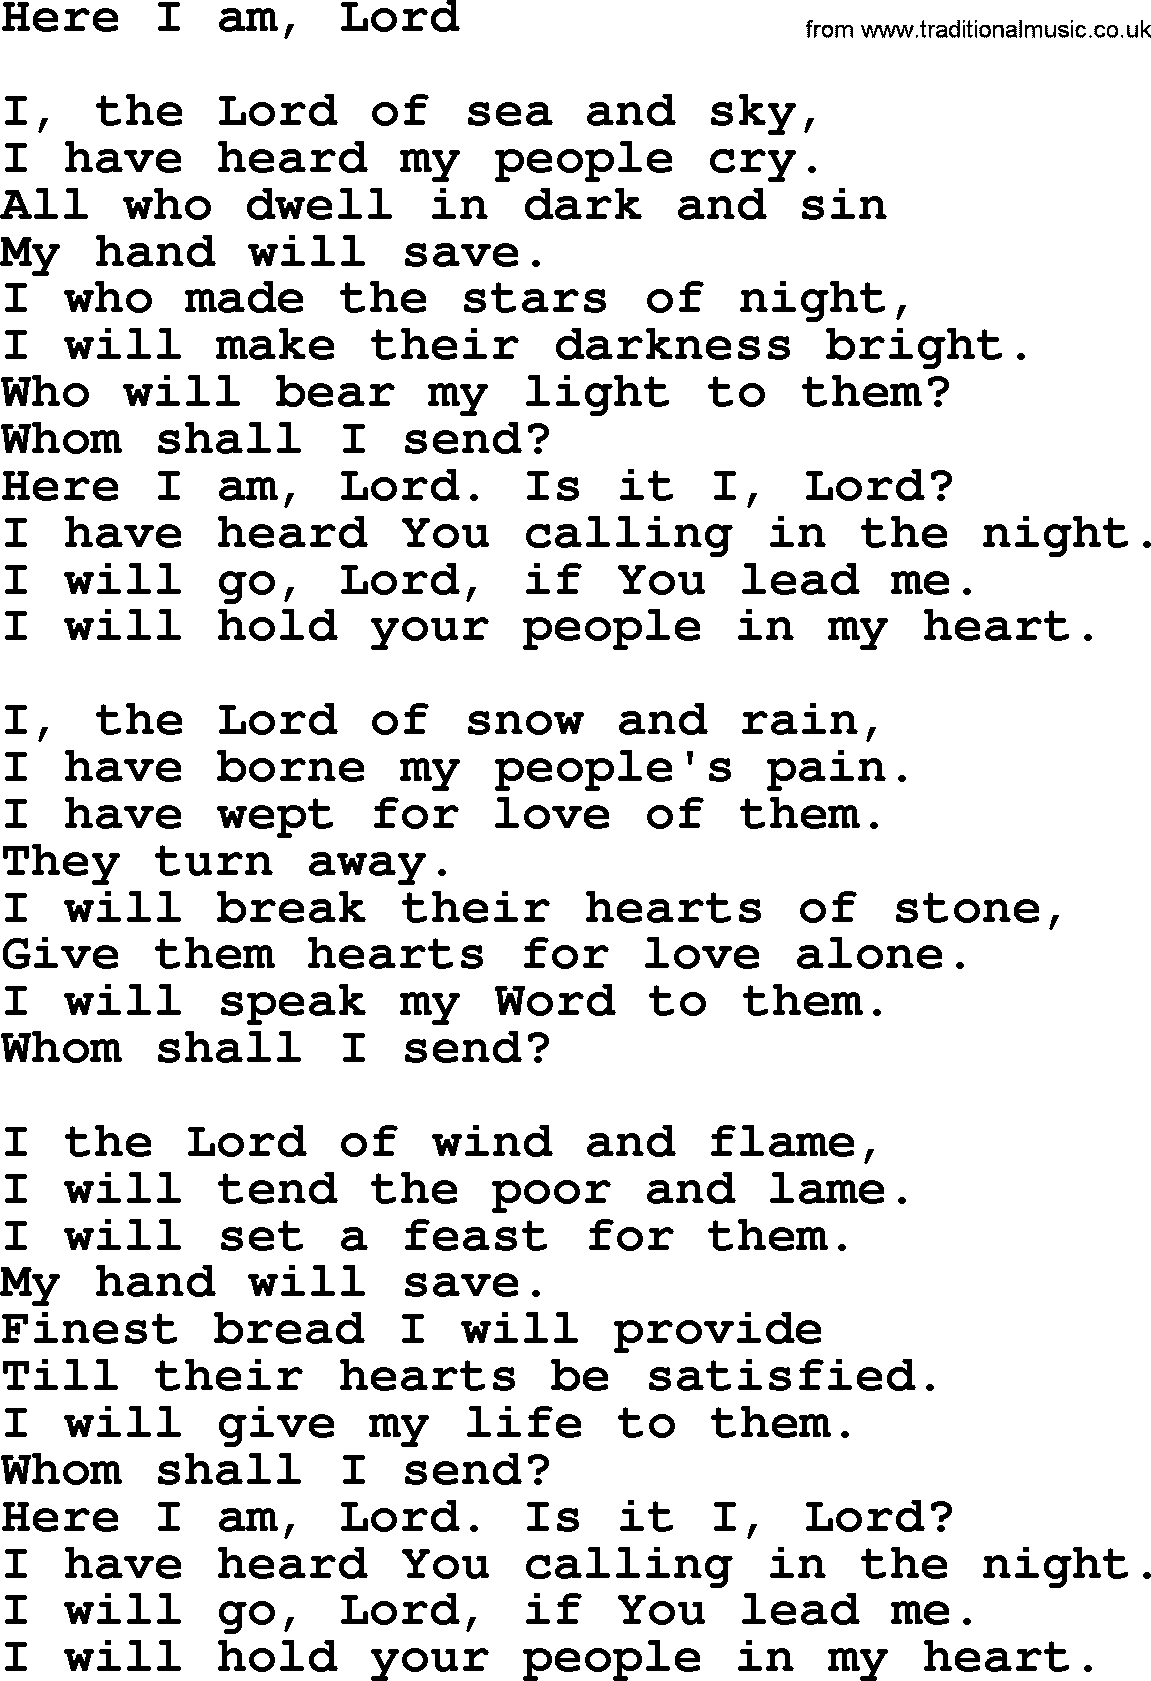 Poem for the Lord